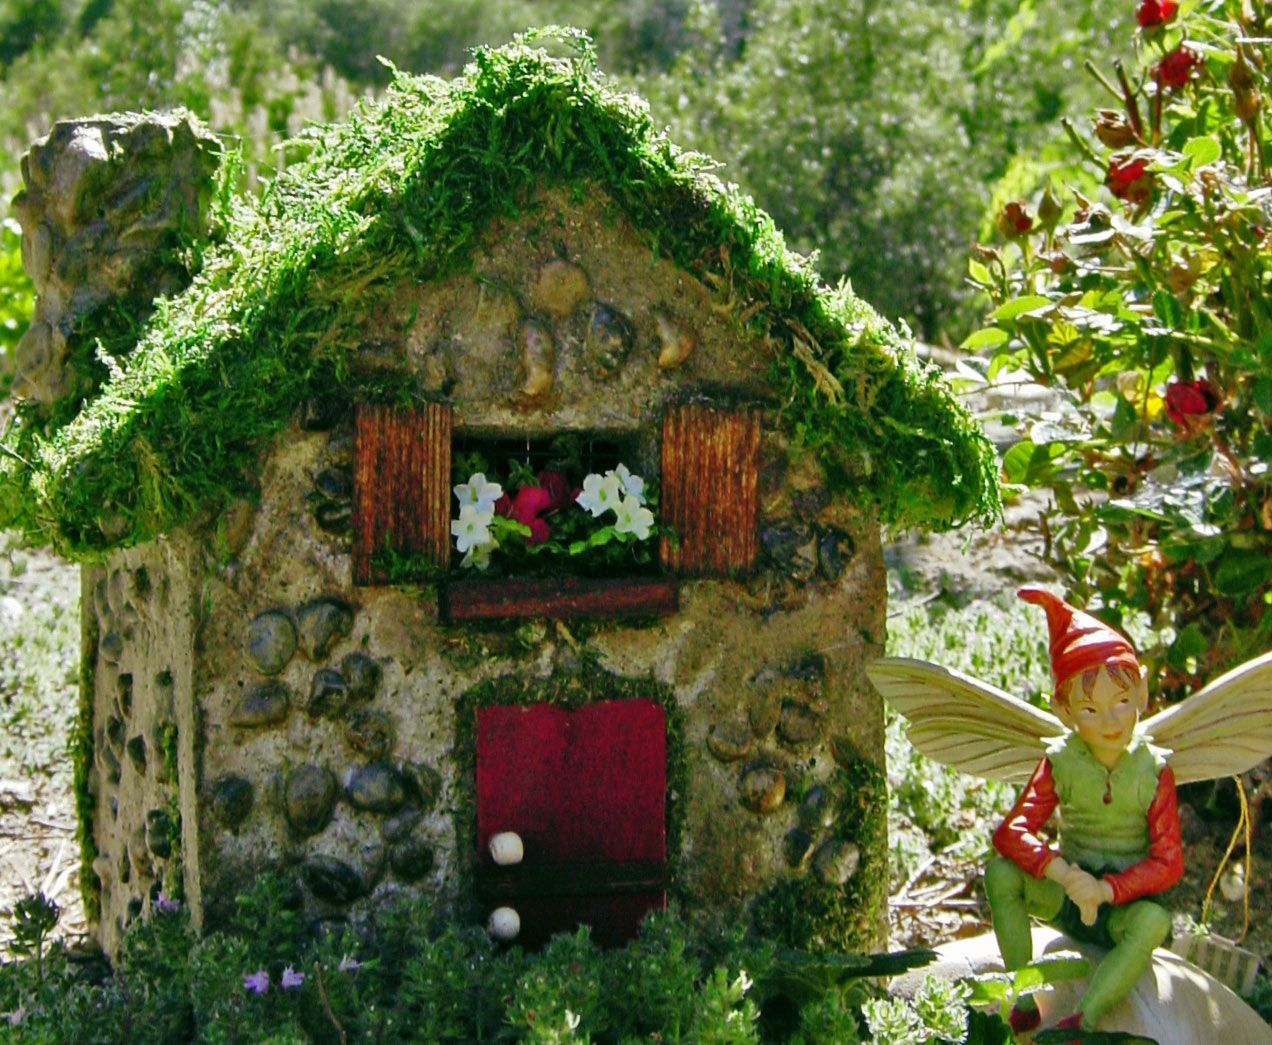 17 Best 1000 images about Seres mgicos on Pinterest Miniature fairy